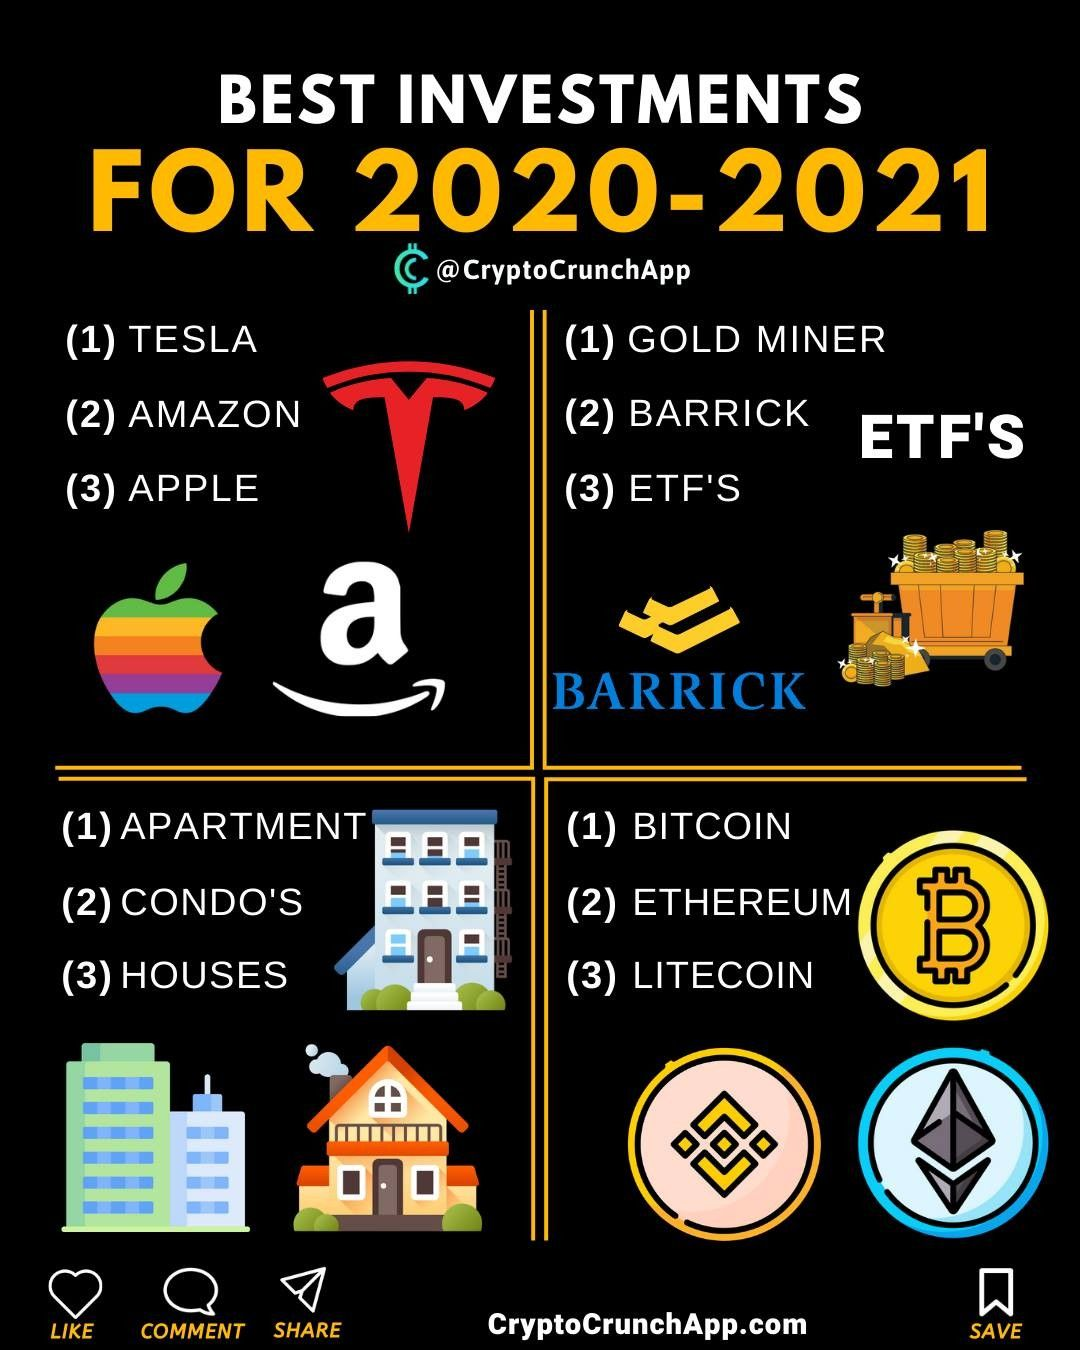 bitcoin good investment 2021